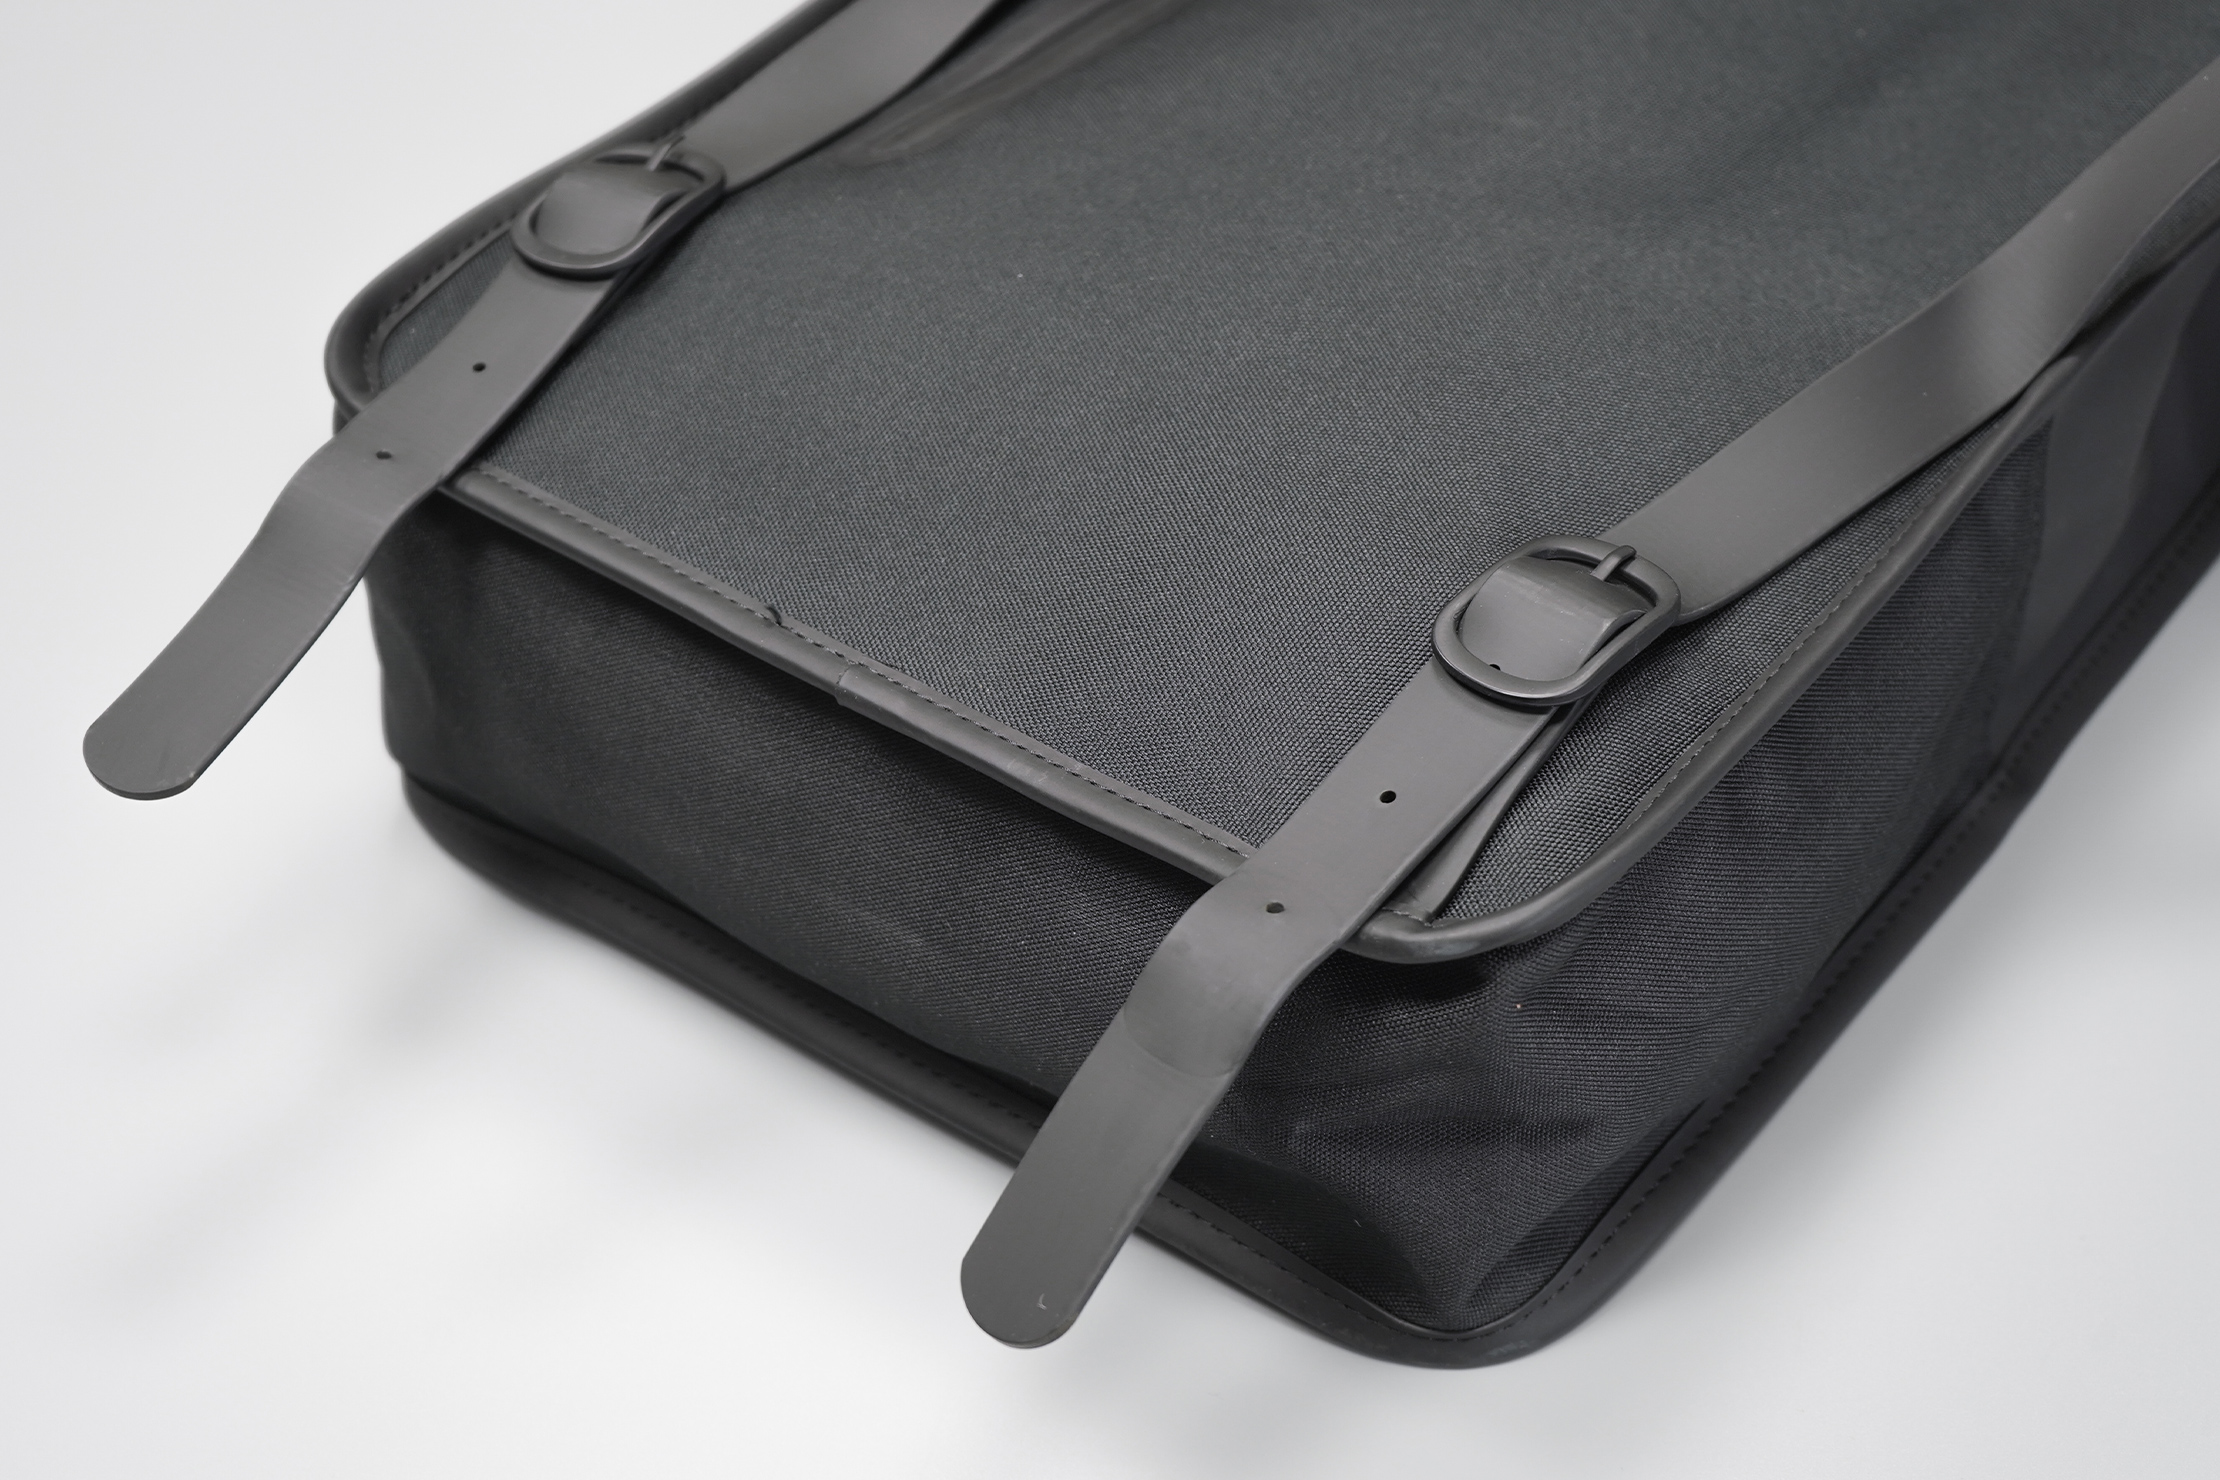 Rains Backpack | It's not our preferred method, though it goes well with the aesthetic